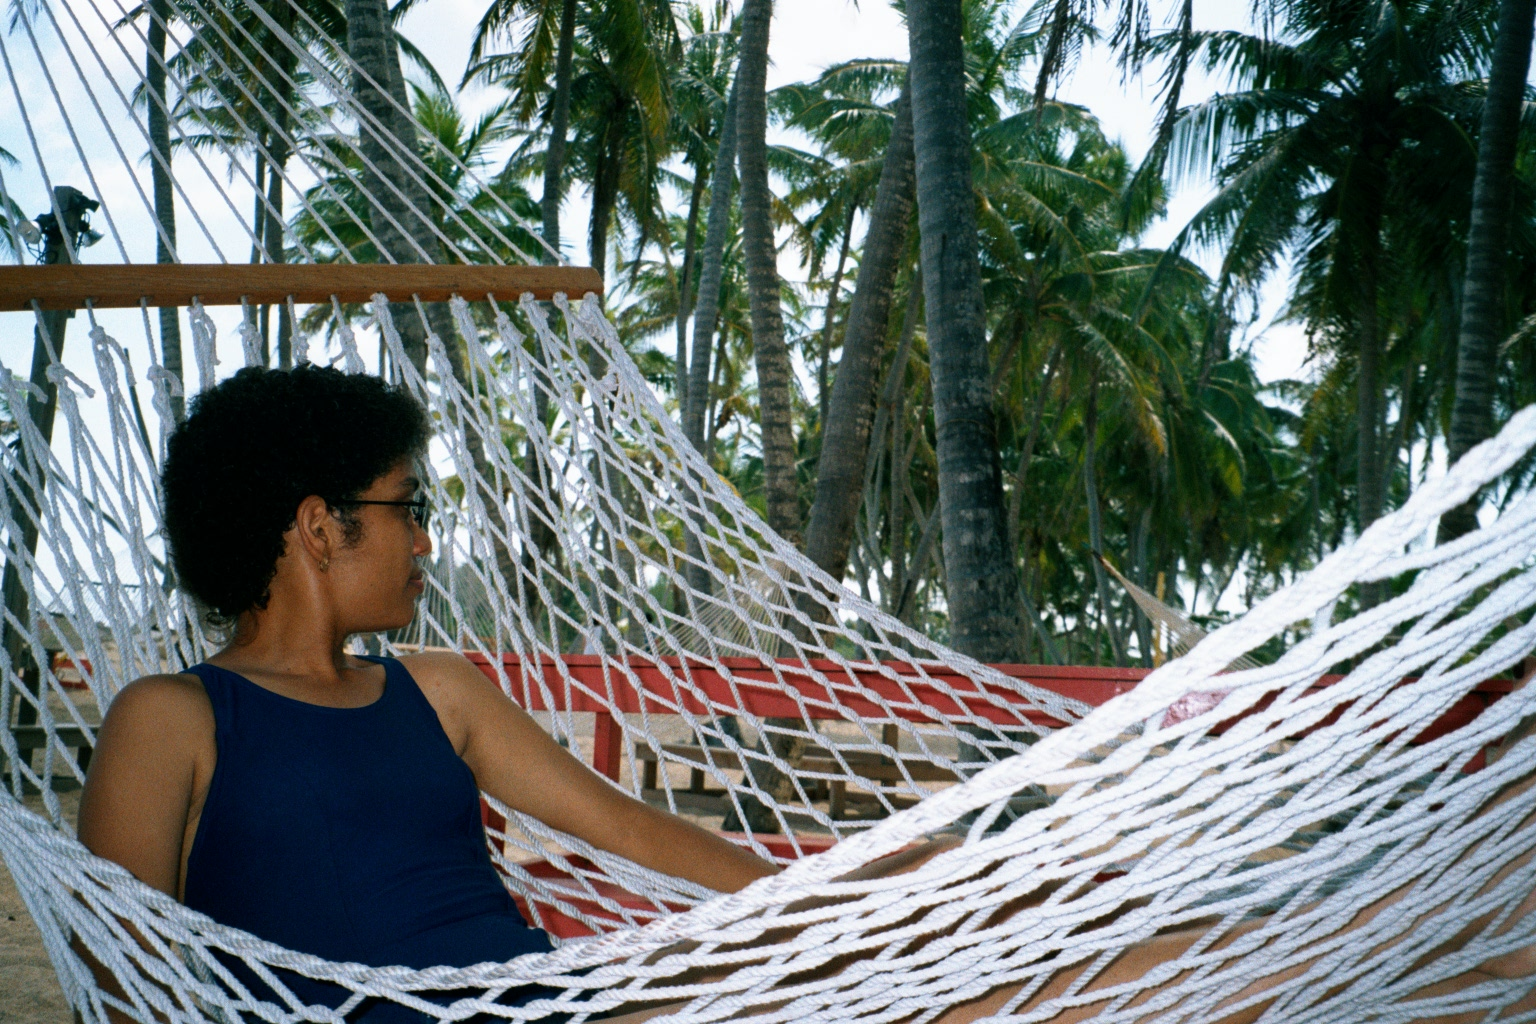 Amarilis in hammock_The Bahamas.JPG